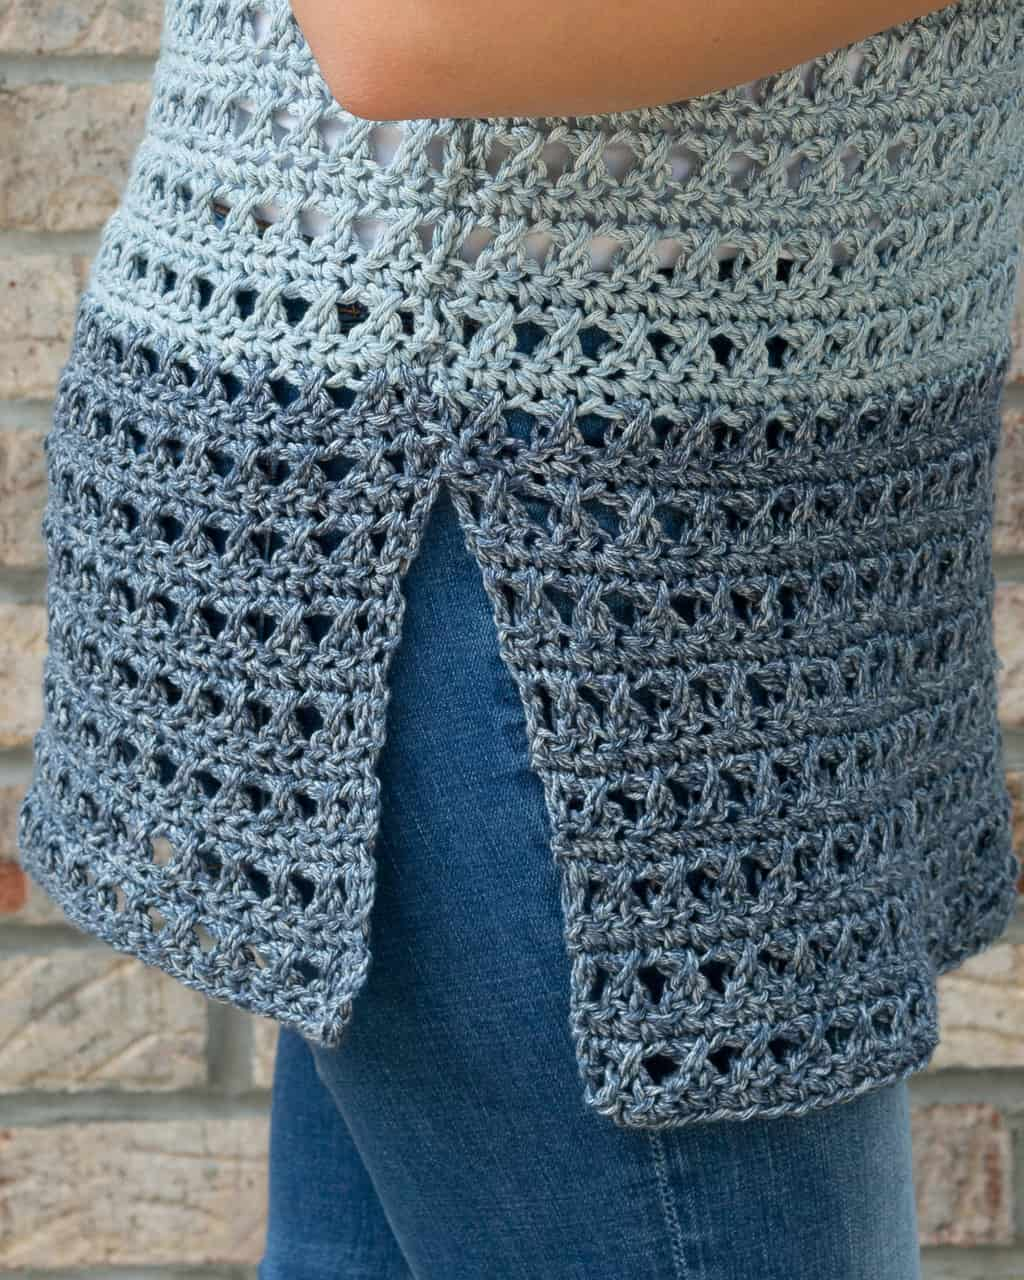 Side Seam of a crochet top